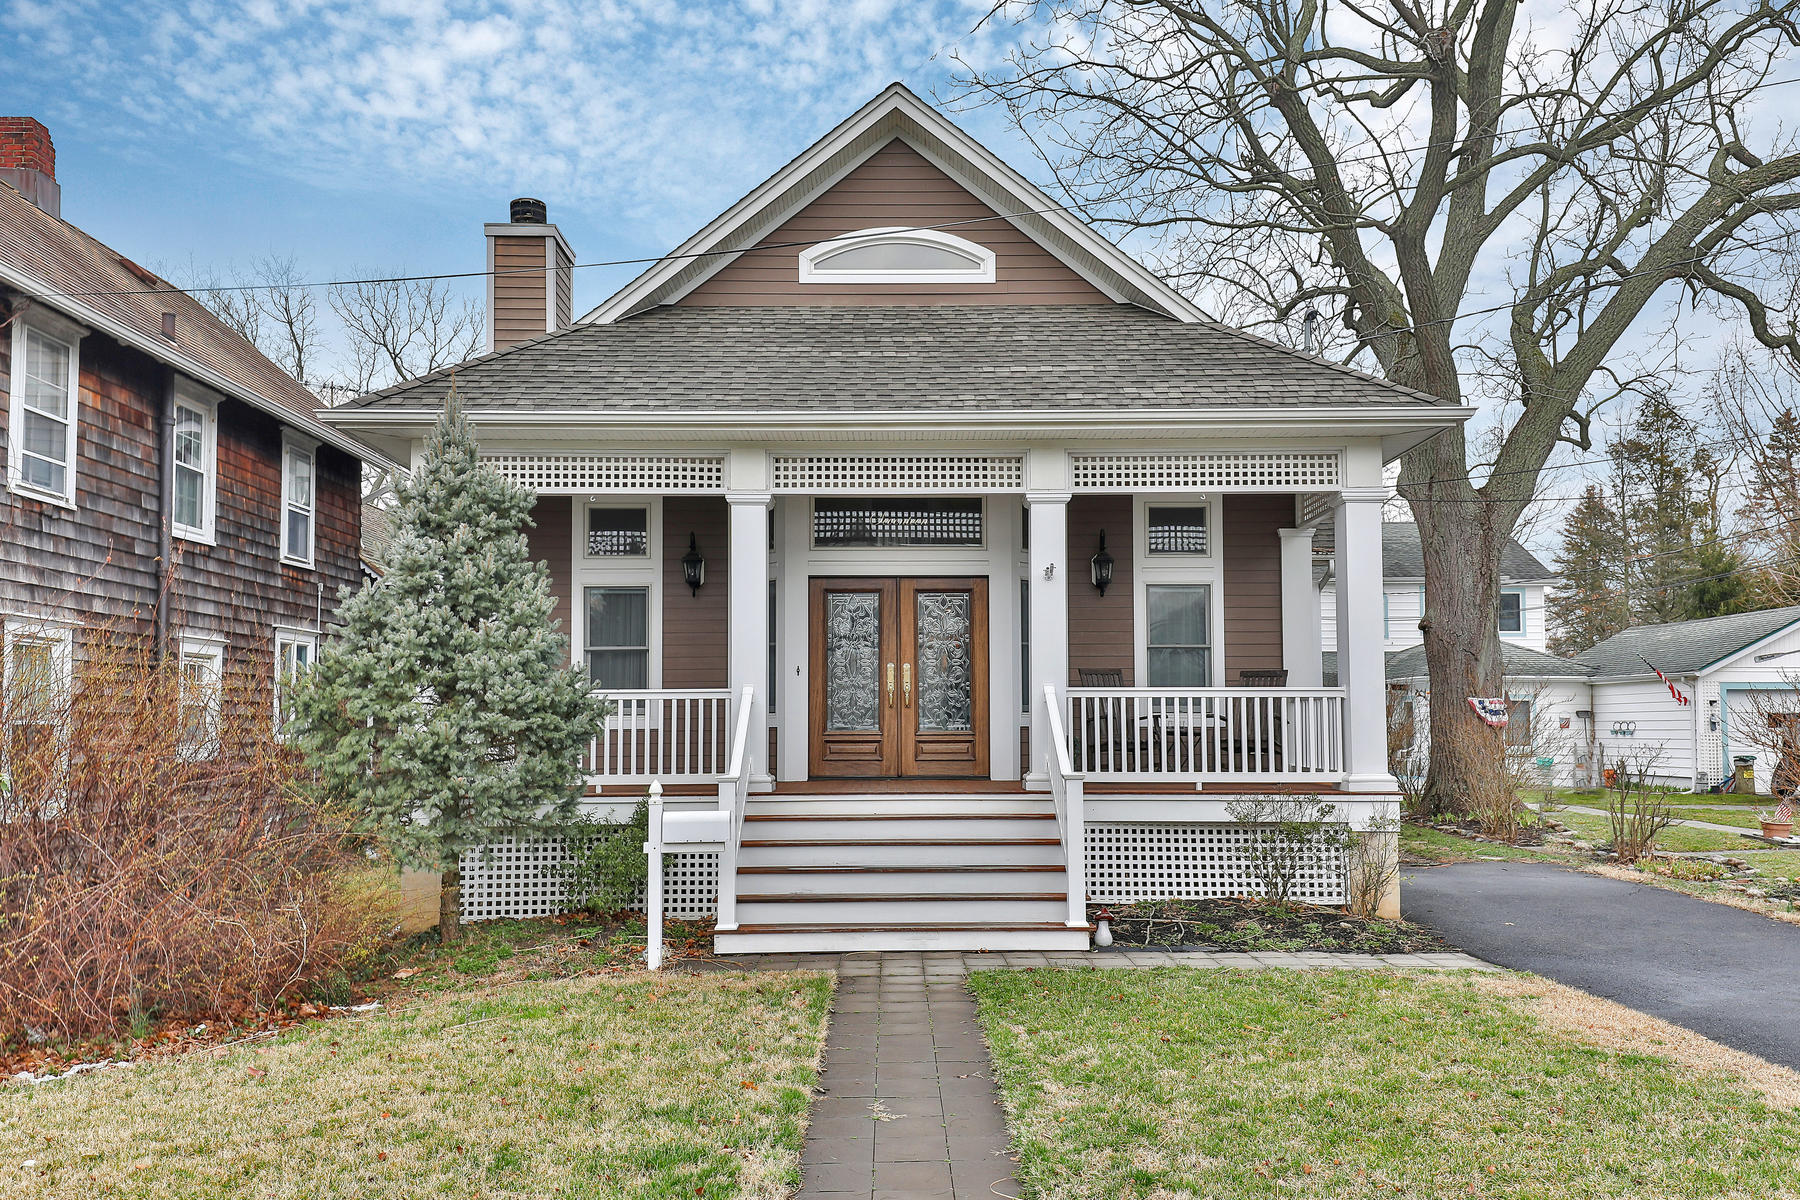 Single Family Home for Sale at Charming Custom Home 17 Central Avenue Manasquan, New Jersey, 08736 United States